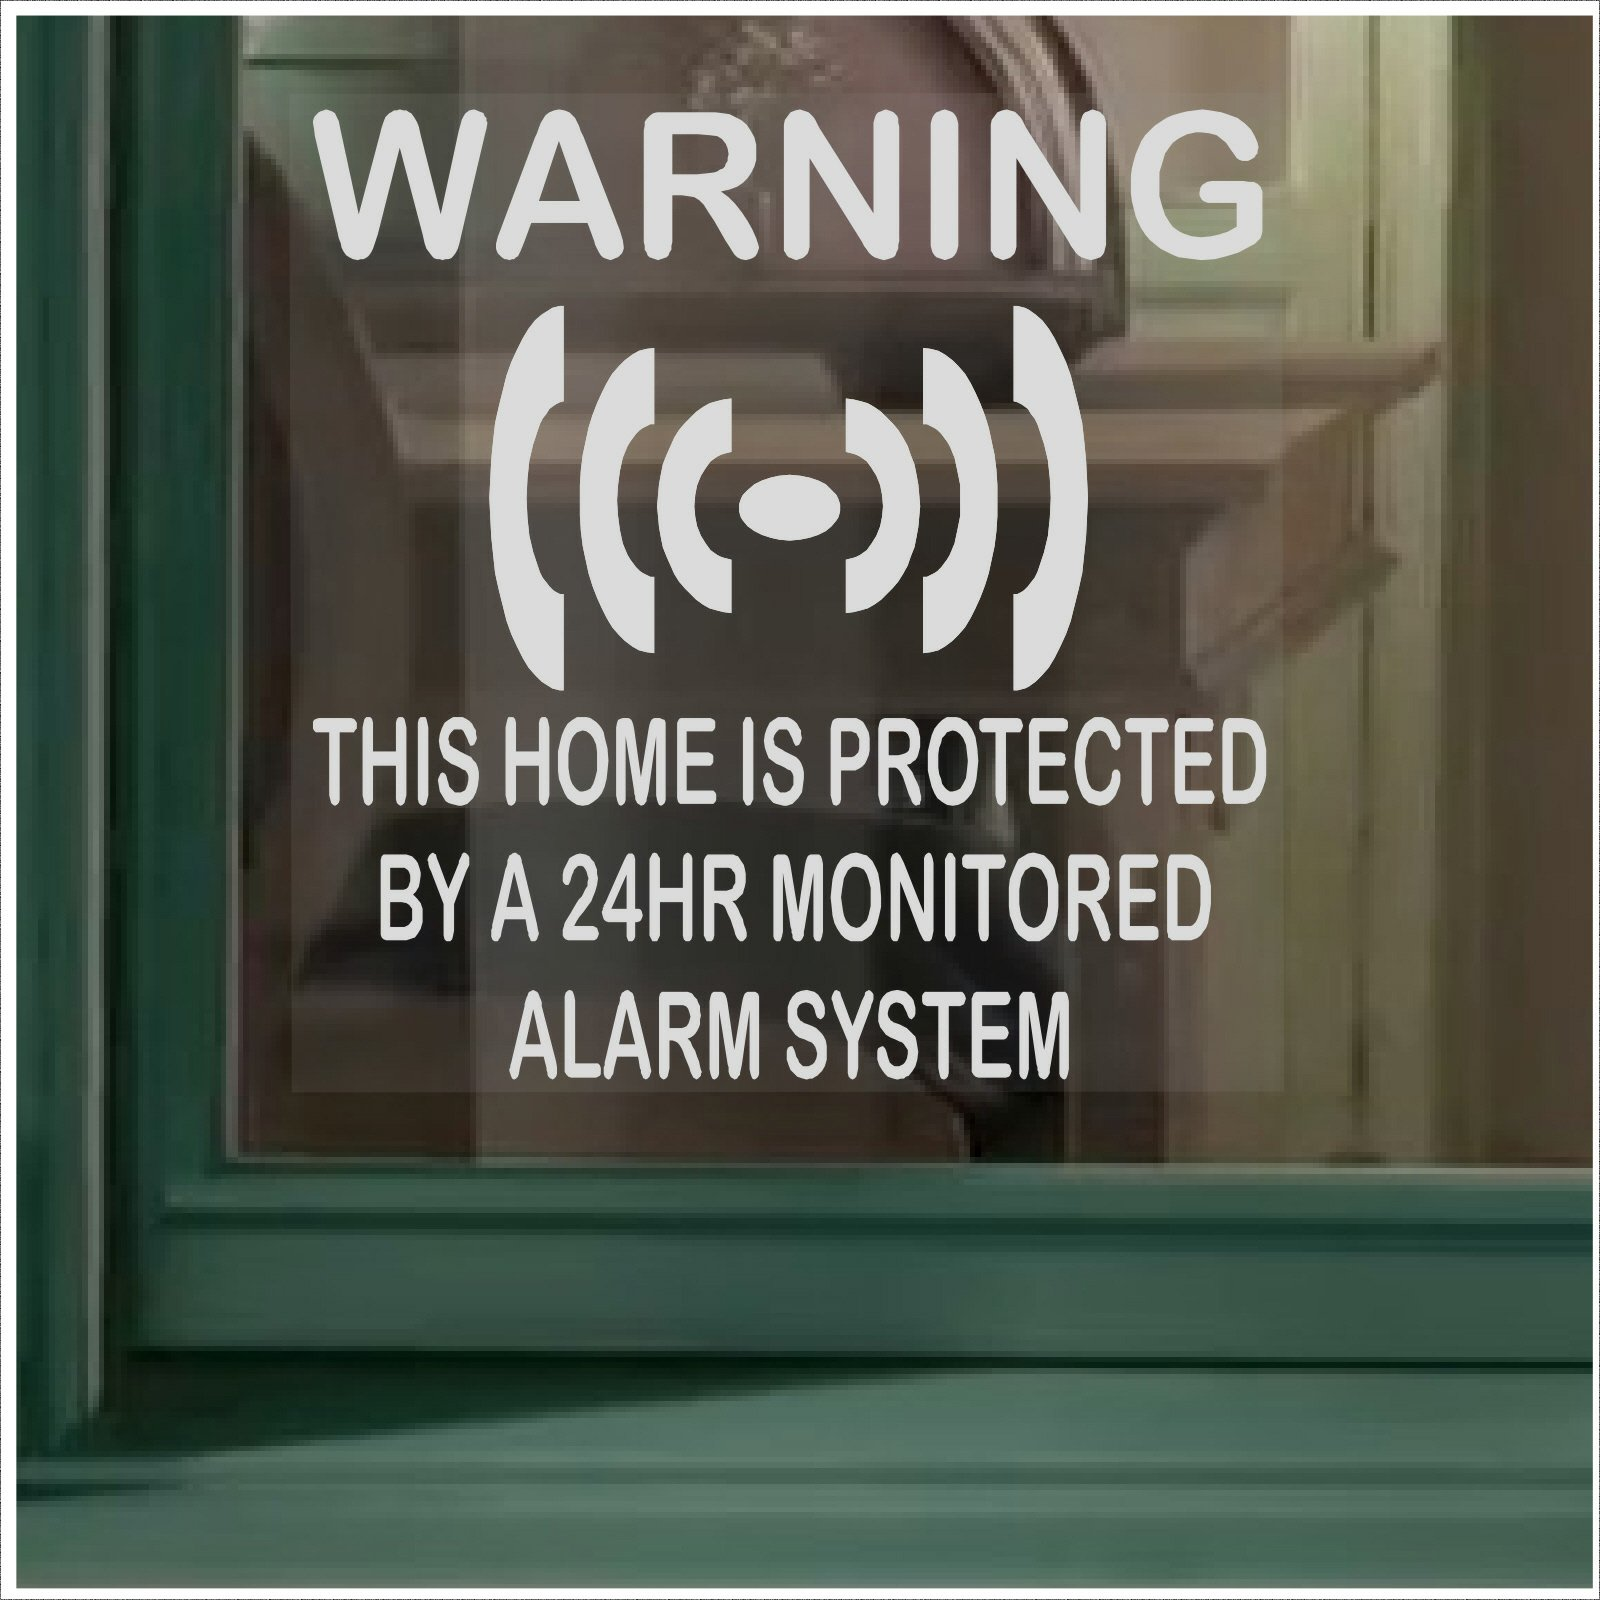 Security stickers amazon 6 x home protected stickers for windows monitored alarm system 24hr security warning signs solutioingenieria Choice Image